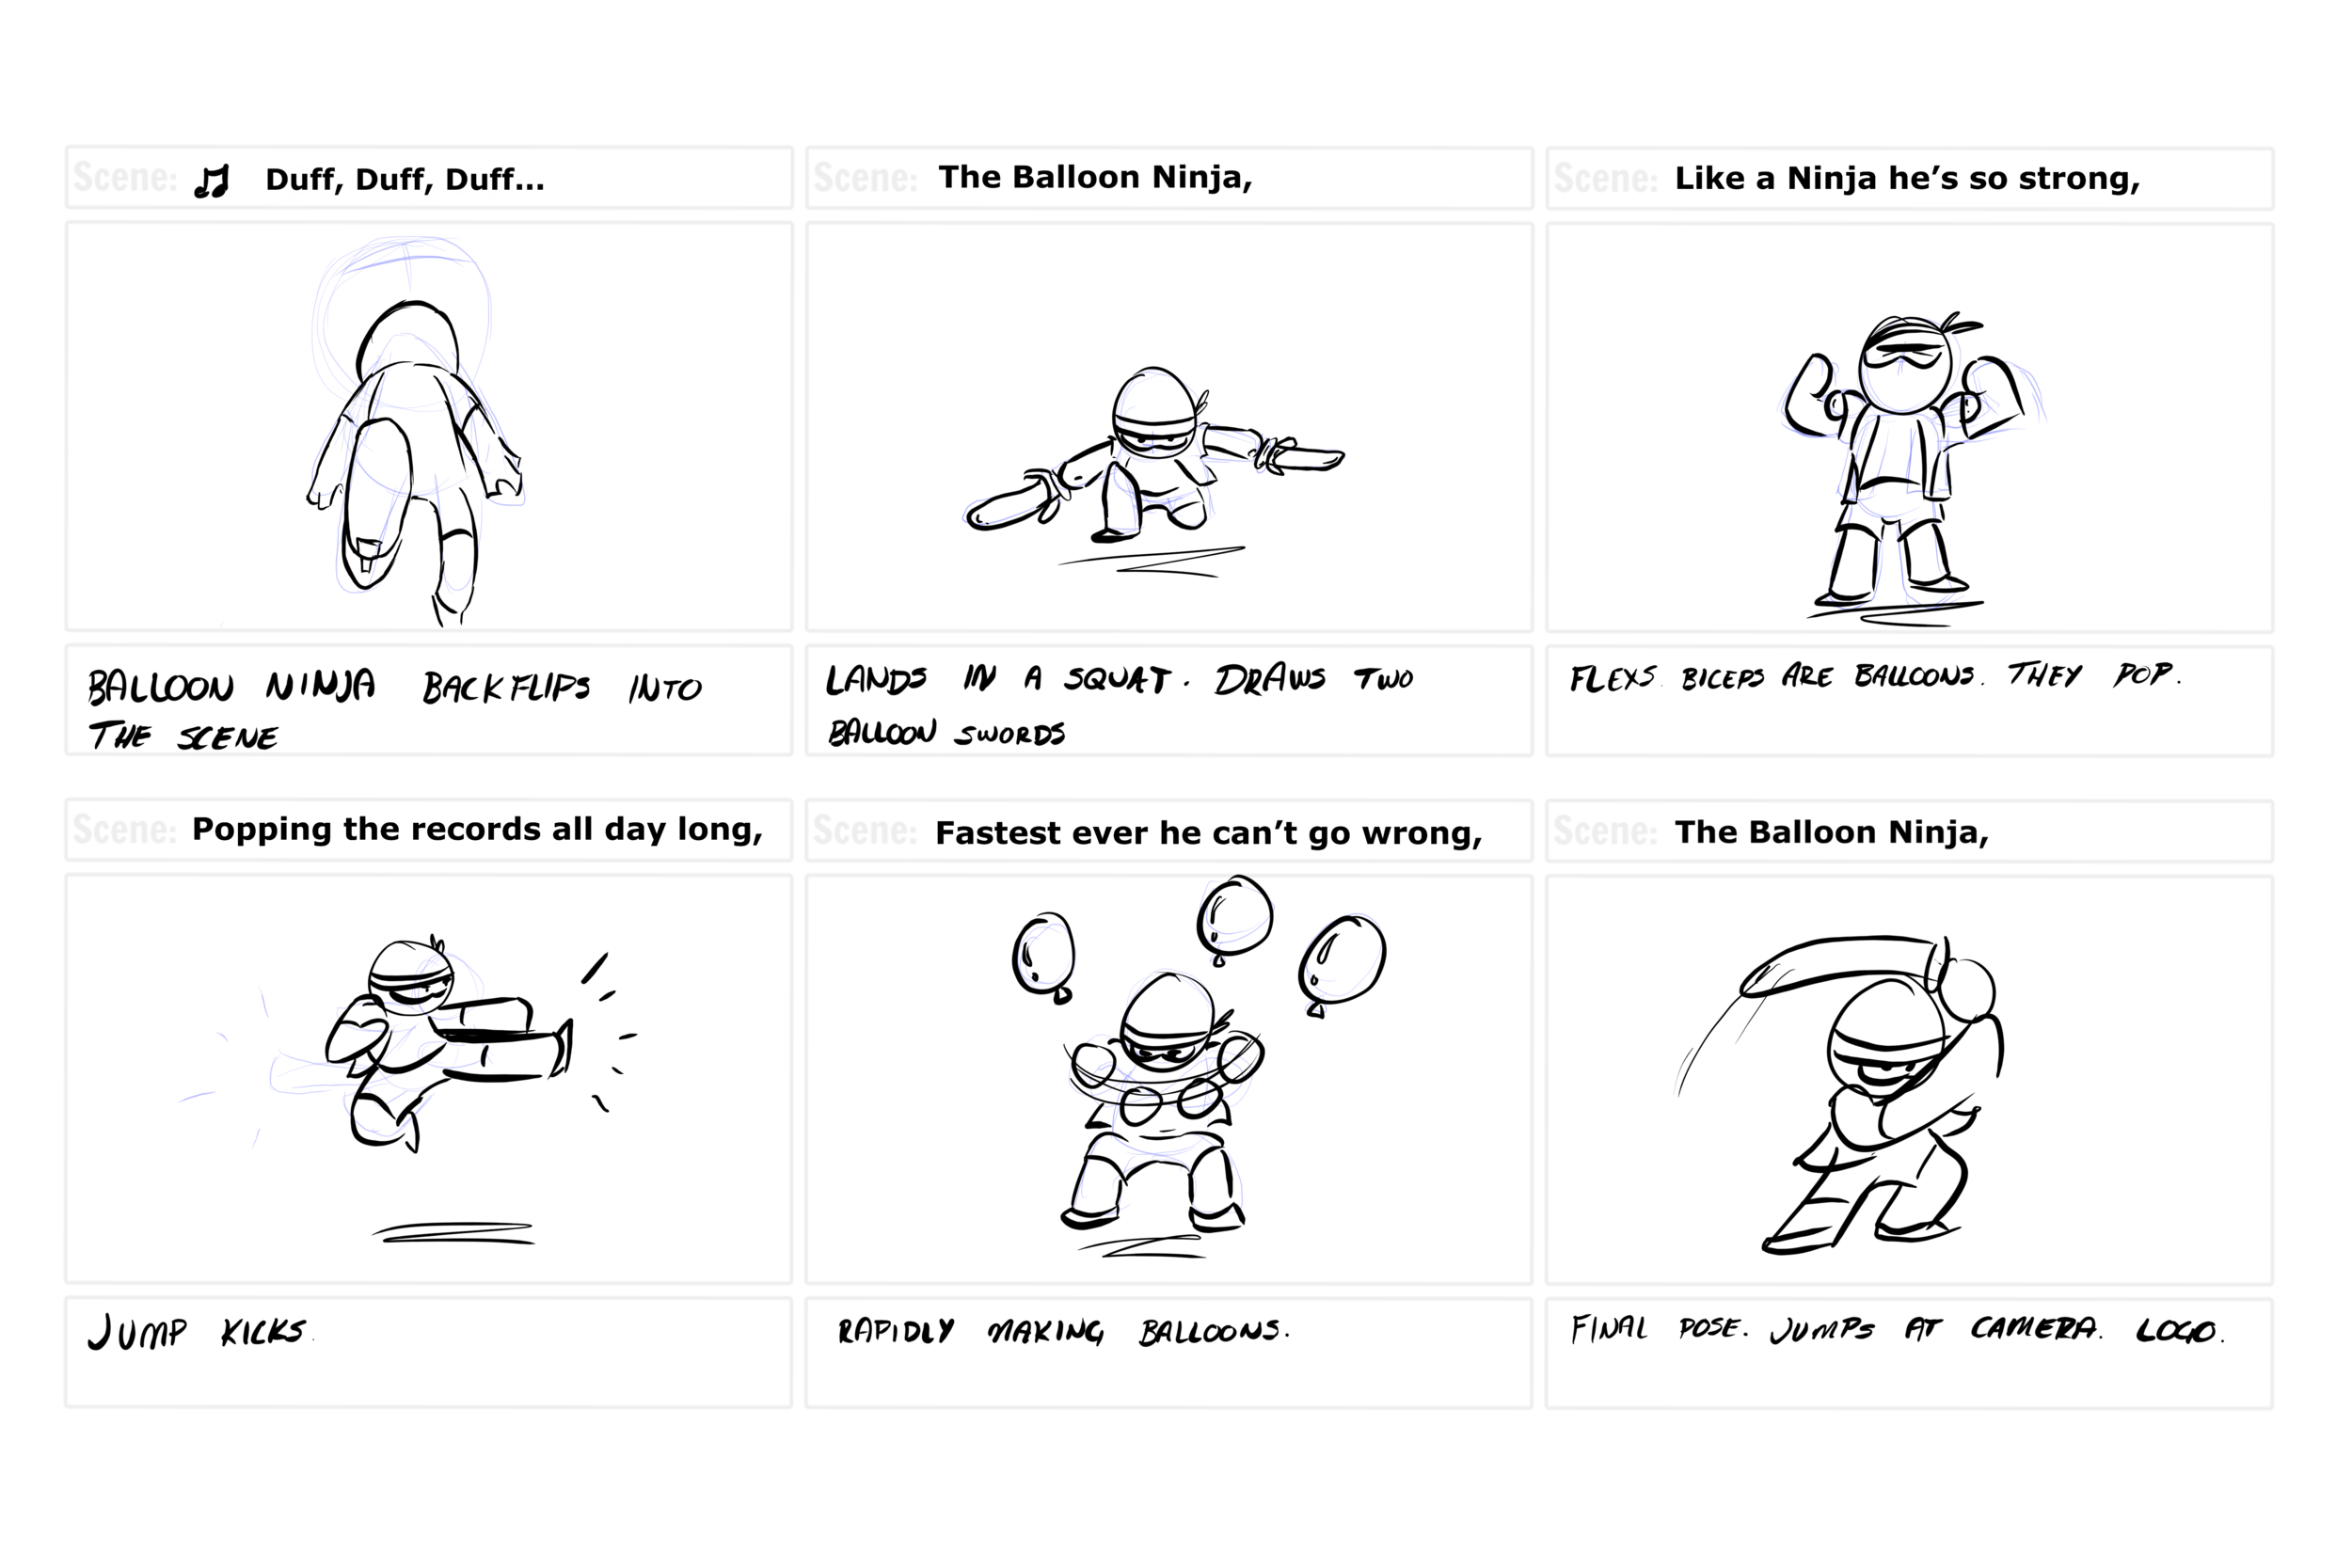 Initial storyboard pitch. A quick 6 panel image I used to help explain the character animation I made when looking into the brief.